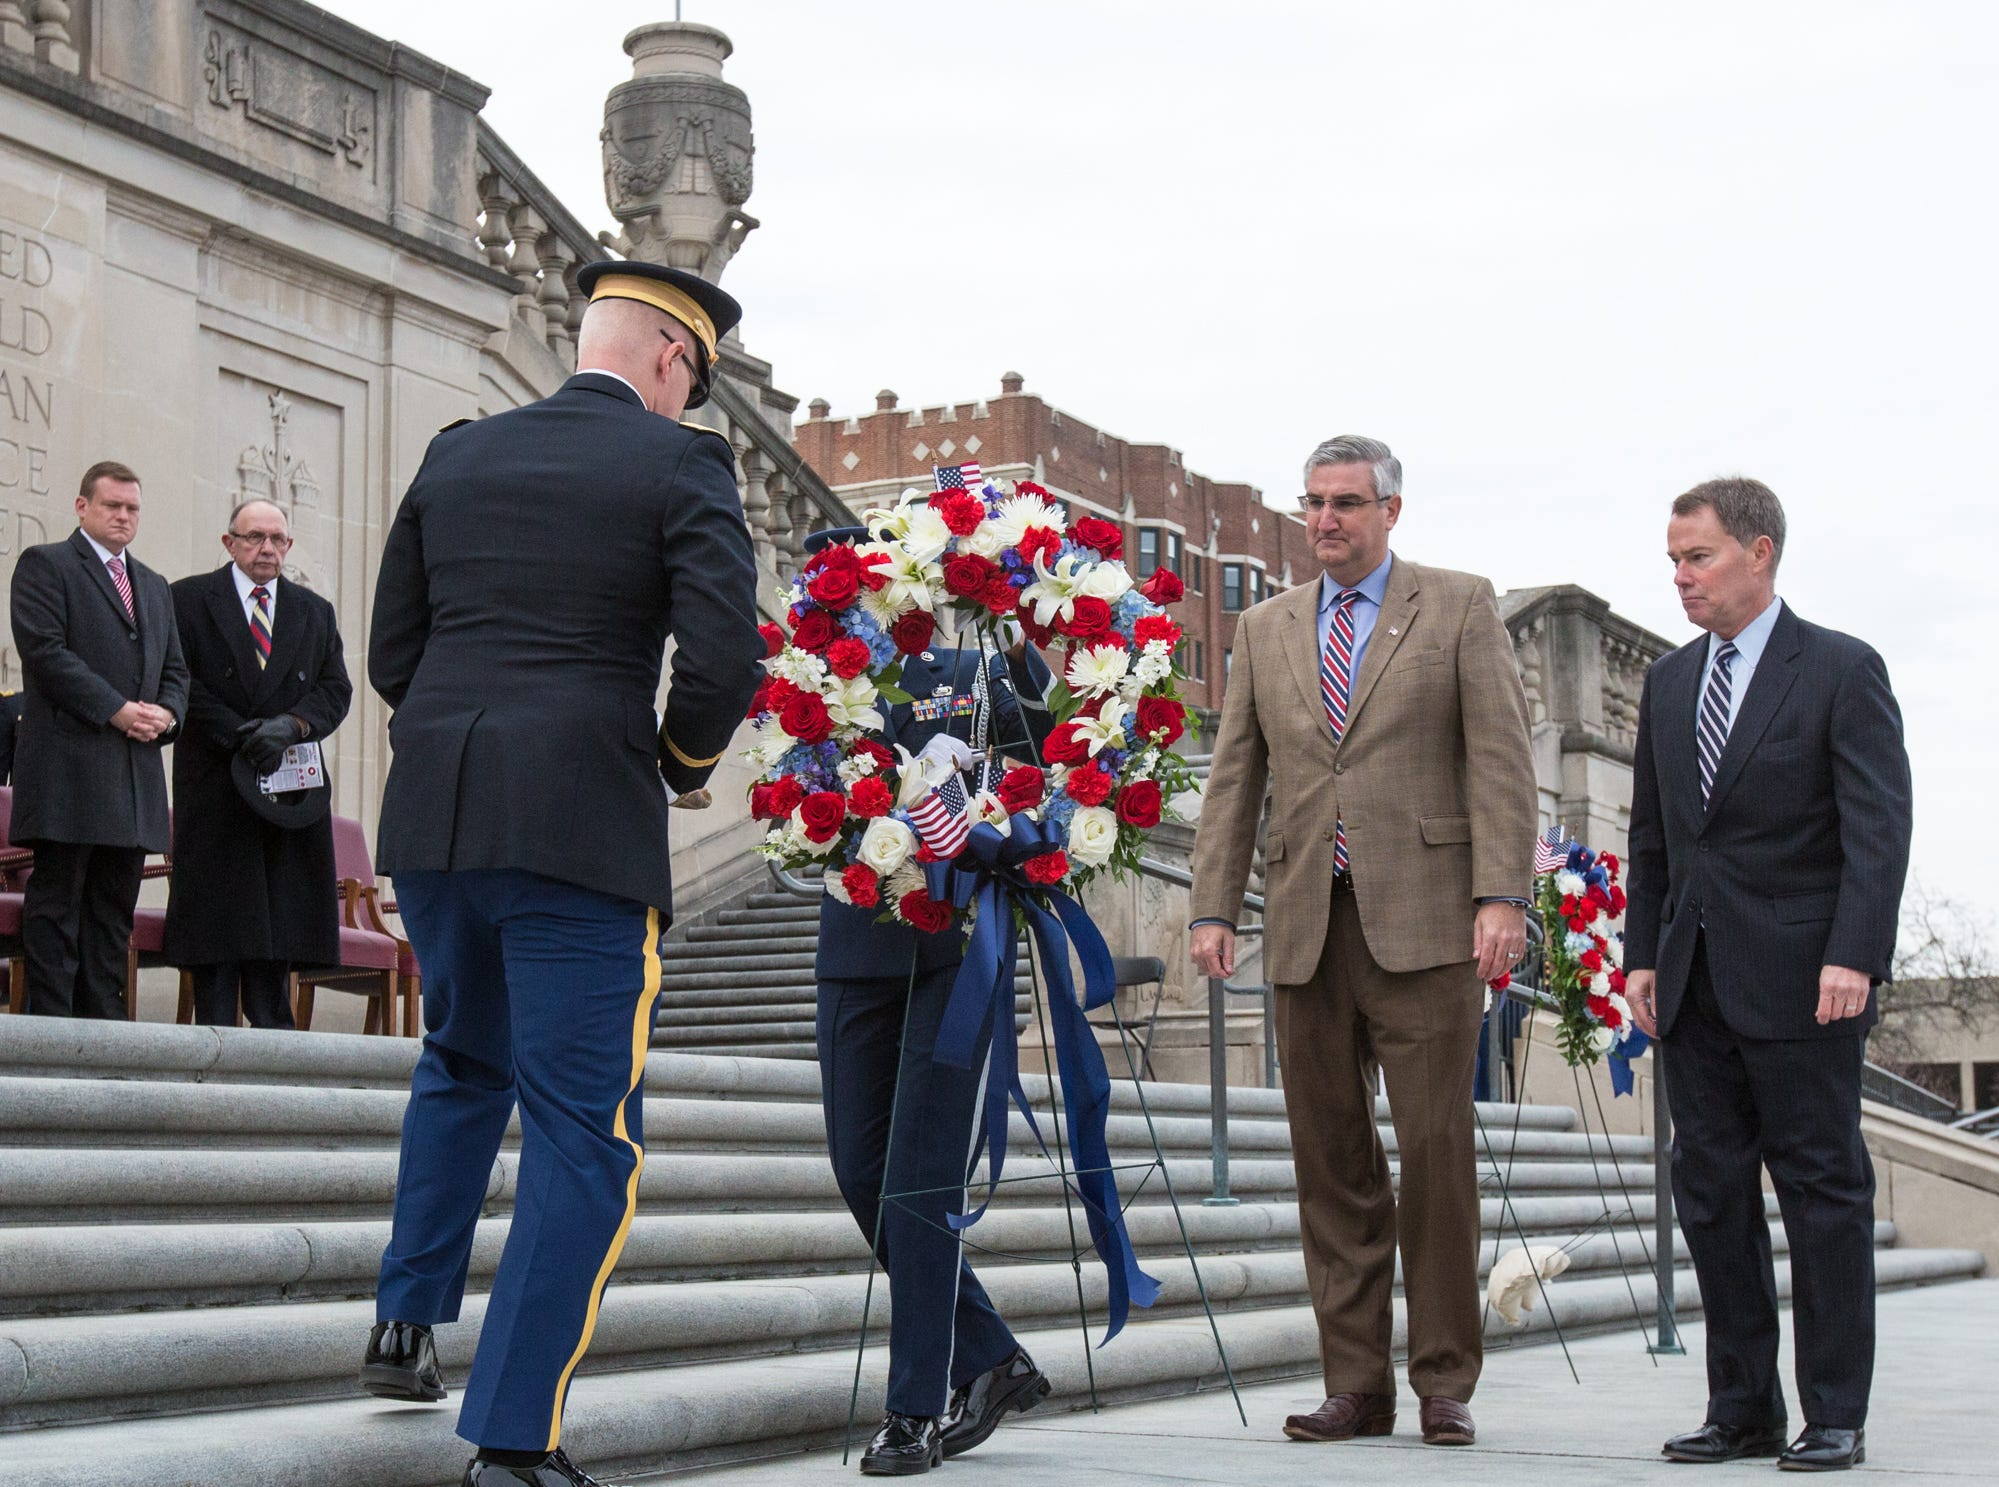 Indiana Governor Eric Holcomb and Indianapolis Mayor Joseph Hogsett lay a Victory Wreath on the steps of the Indiana War Memorial, during the Veterans Day Service Saturday, November 11, 2017.